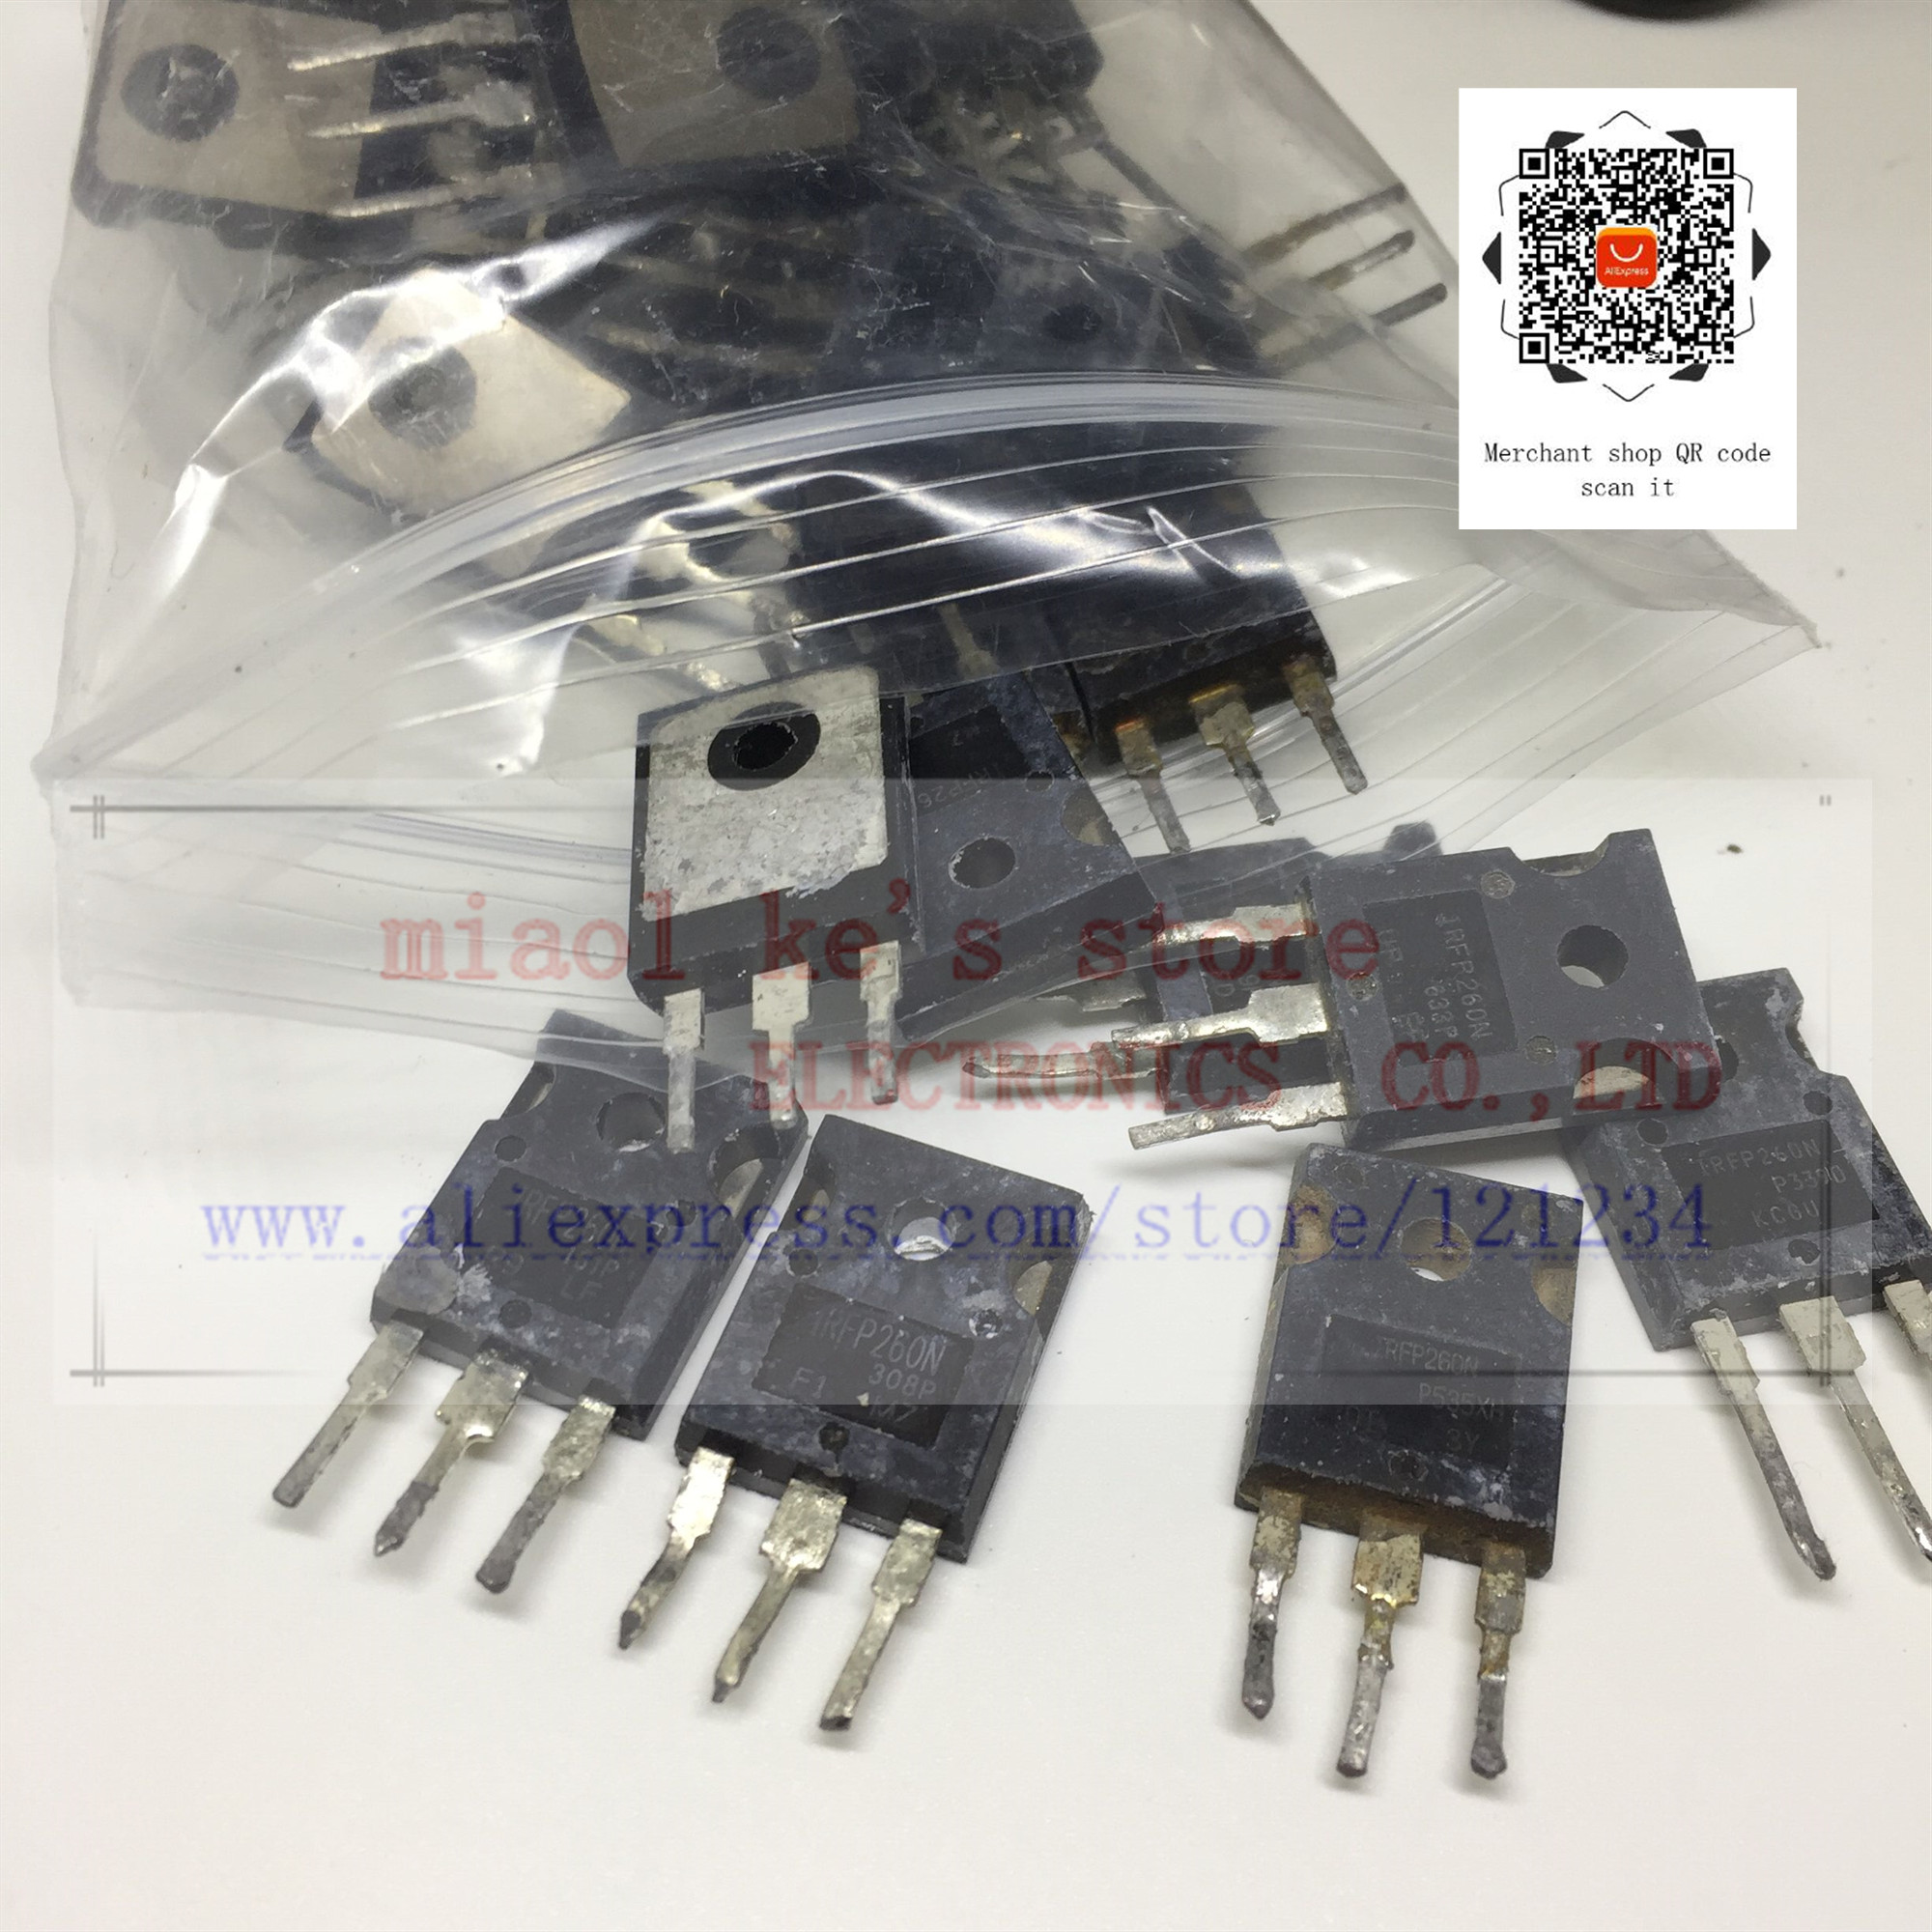 [ 50pcs/1lot ] IRFP260 IRFP260N IRFP260NPBF [ Used Goods ]- Through Hole MOSFET N-CH Pval (2068) 200V 50A 300W TO-247AC